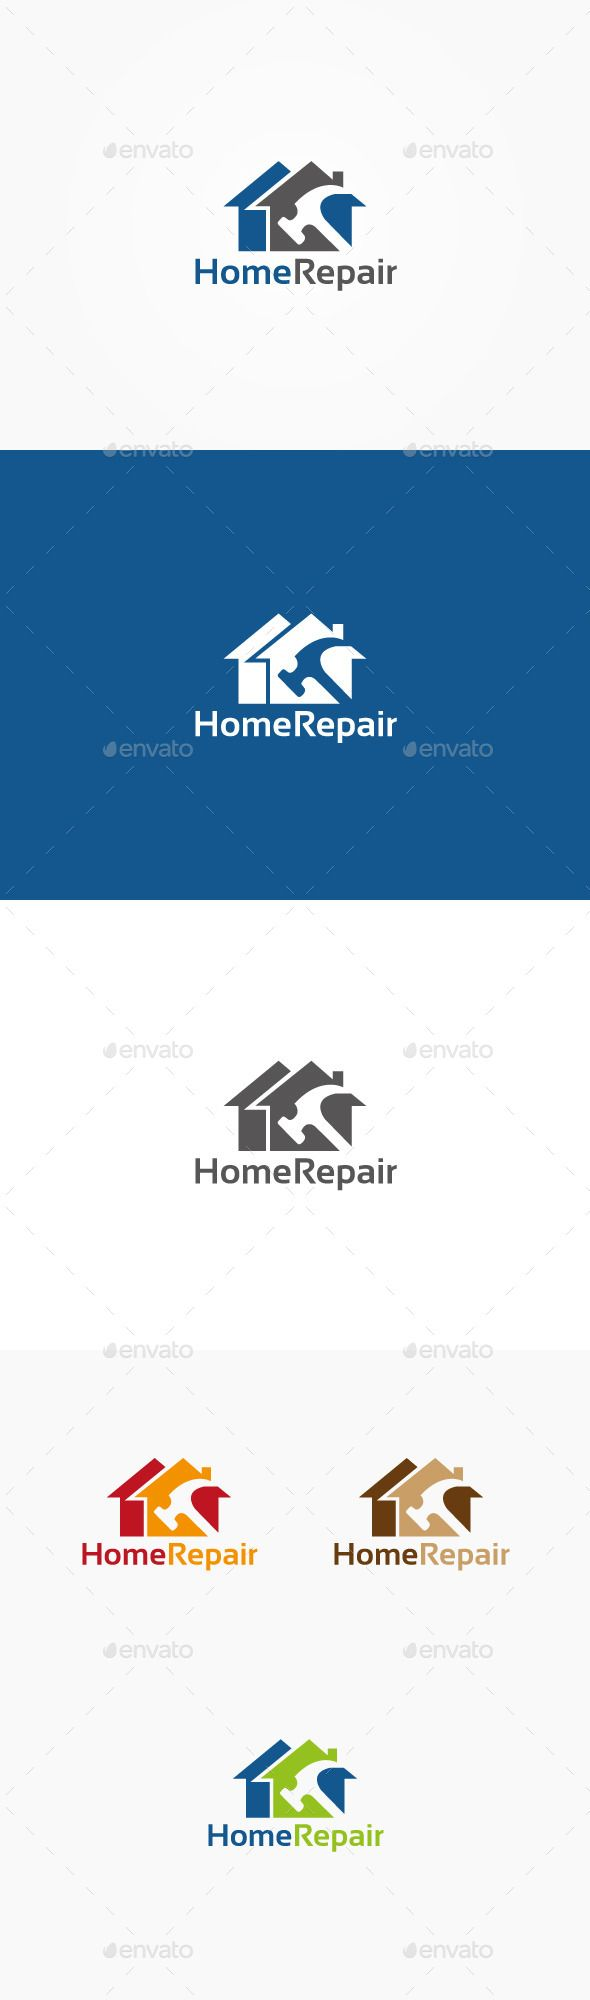 Home Repair Logo u2014 Vector EPS #work #home u2022 Available here u2192 https://graphicriver.net/item/home-repair-logo/9702041?ref=pxcr